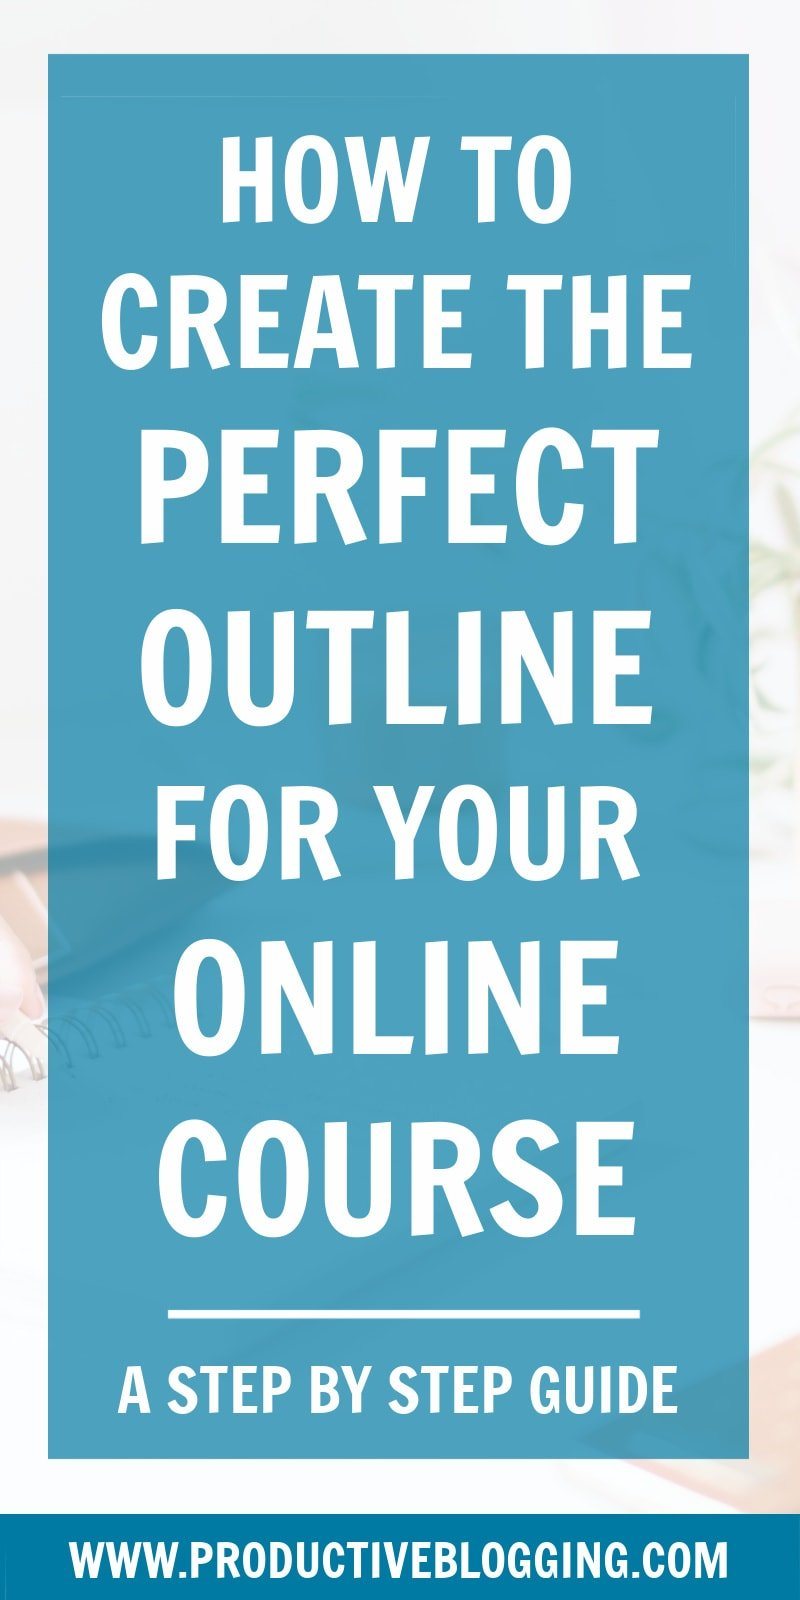 A good outline will make it easier to create your course AND it will make your course more enjoyable for your students and ultimately more successful. Here's how to create the perfect outline for your online course… #onlinecourseoutline #onlinecoursecreation #onlinecourse #digitalcourse #makemoneyblogging #monetizeyourblog #blogginglife #bloglife #professionalblogger #bloggingismyjob #solopreneur #mompreneur #fempreneur #bloggingbiz #bloggingtips #productivitytips #productiveblogging